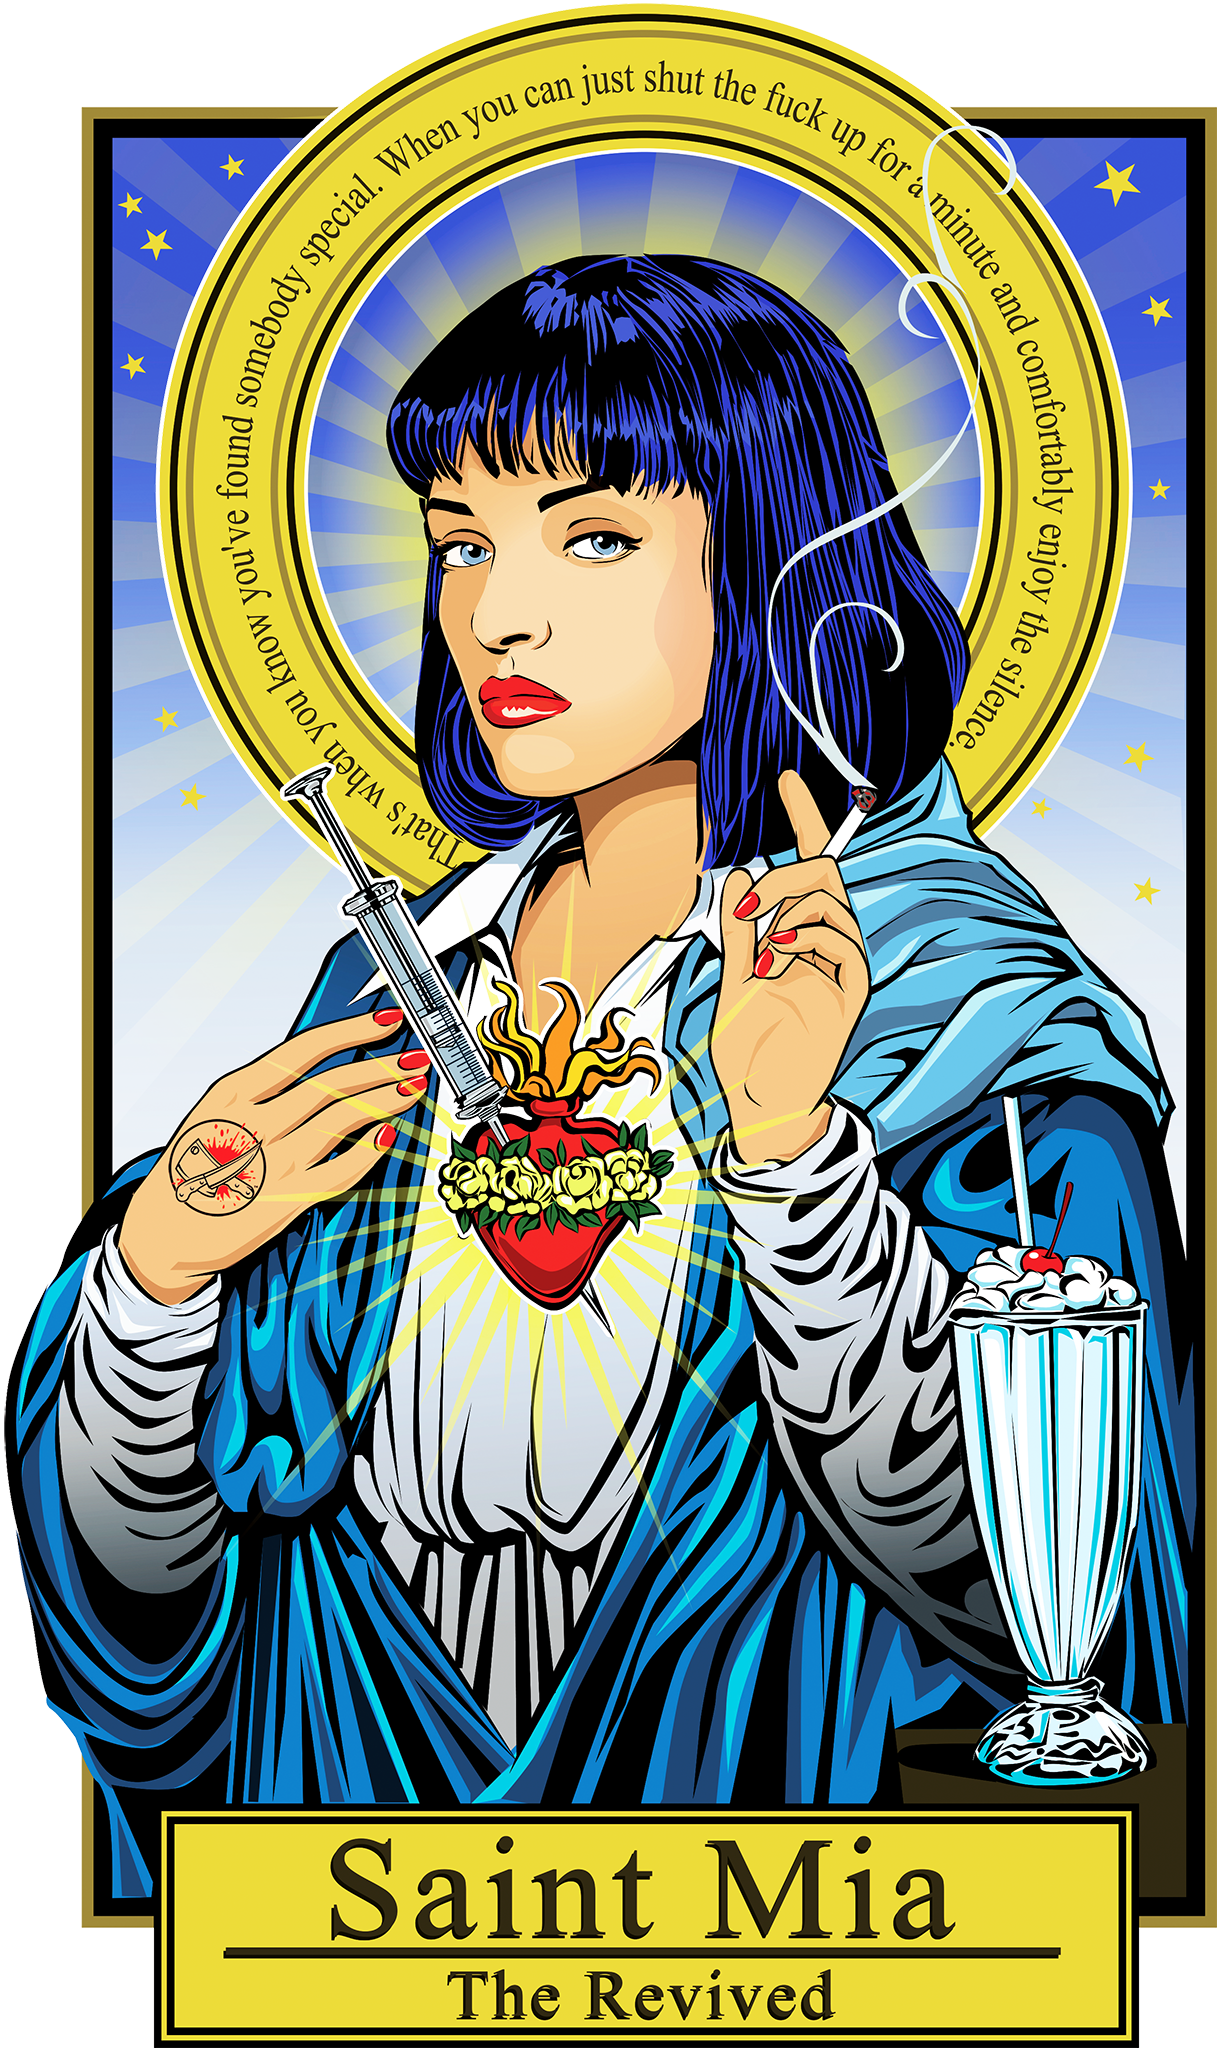 Saint Mia-The Revived Poster